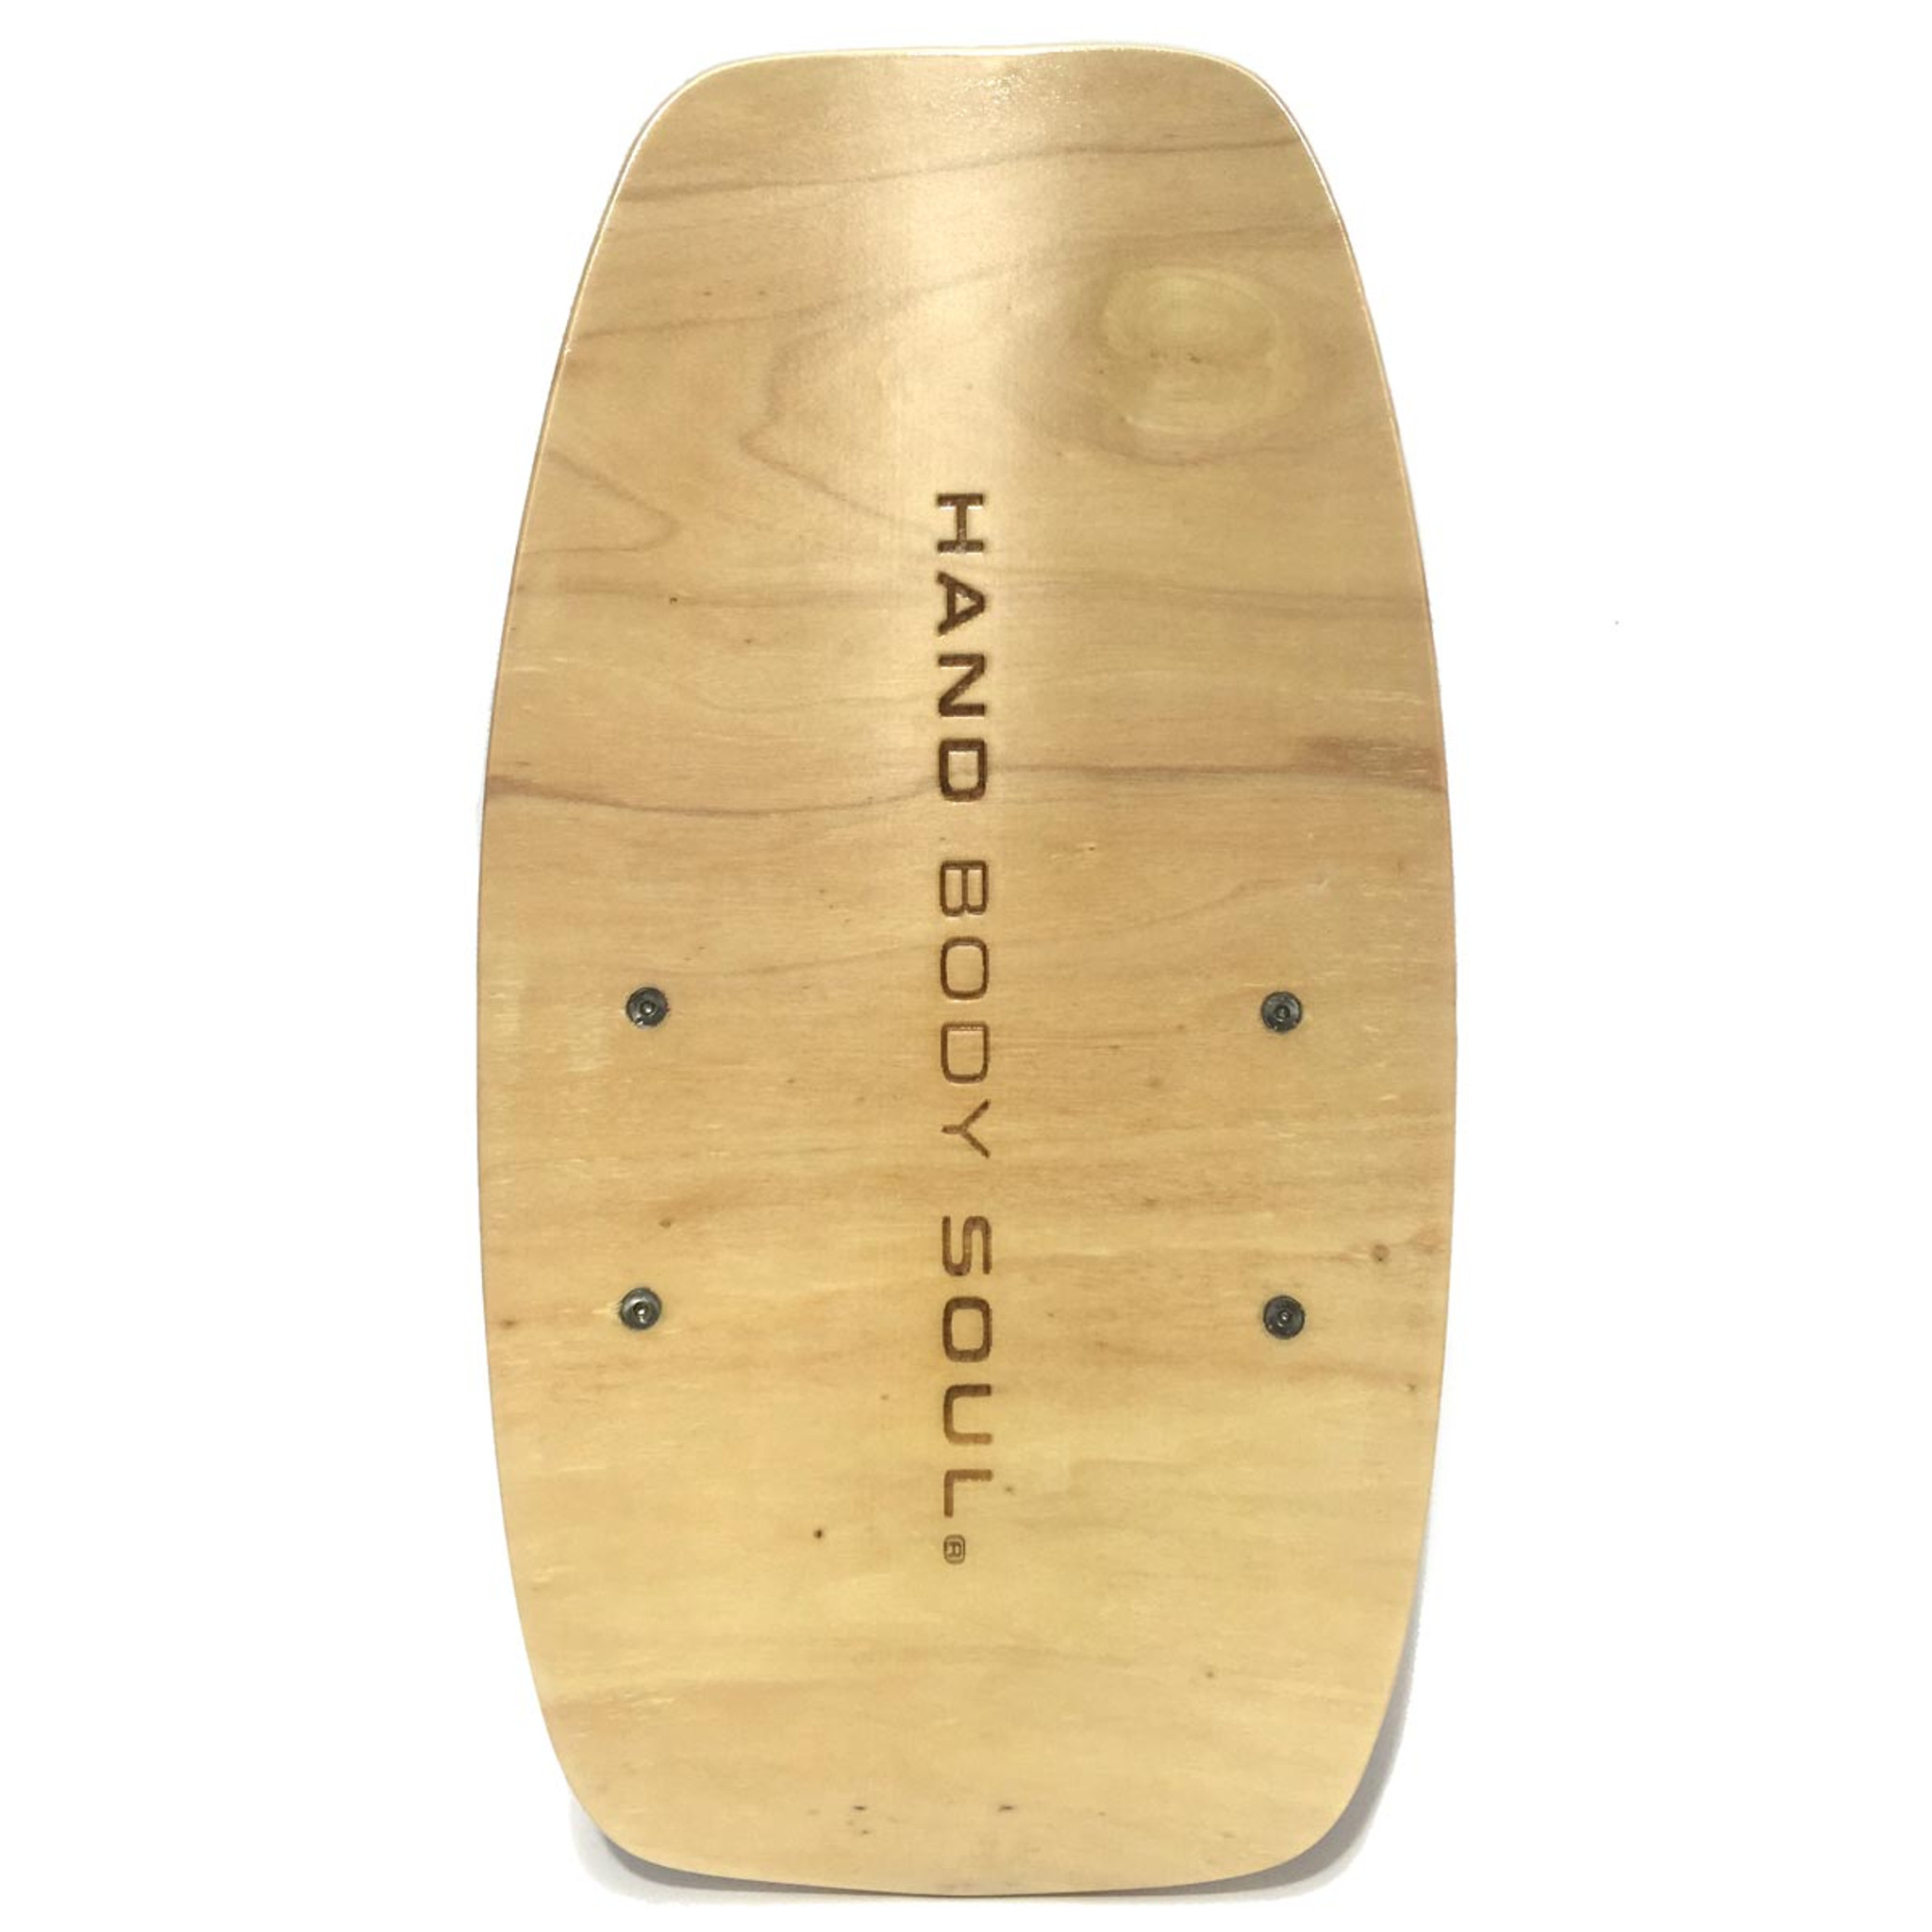 Finest Bodysurfing Gear - Wood Handboard PF3s Socks Savers